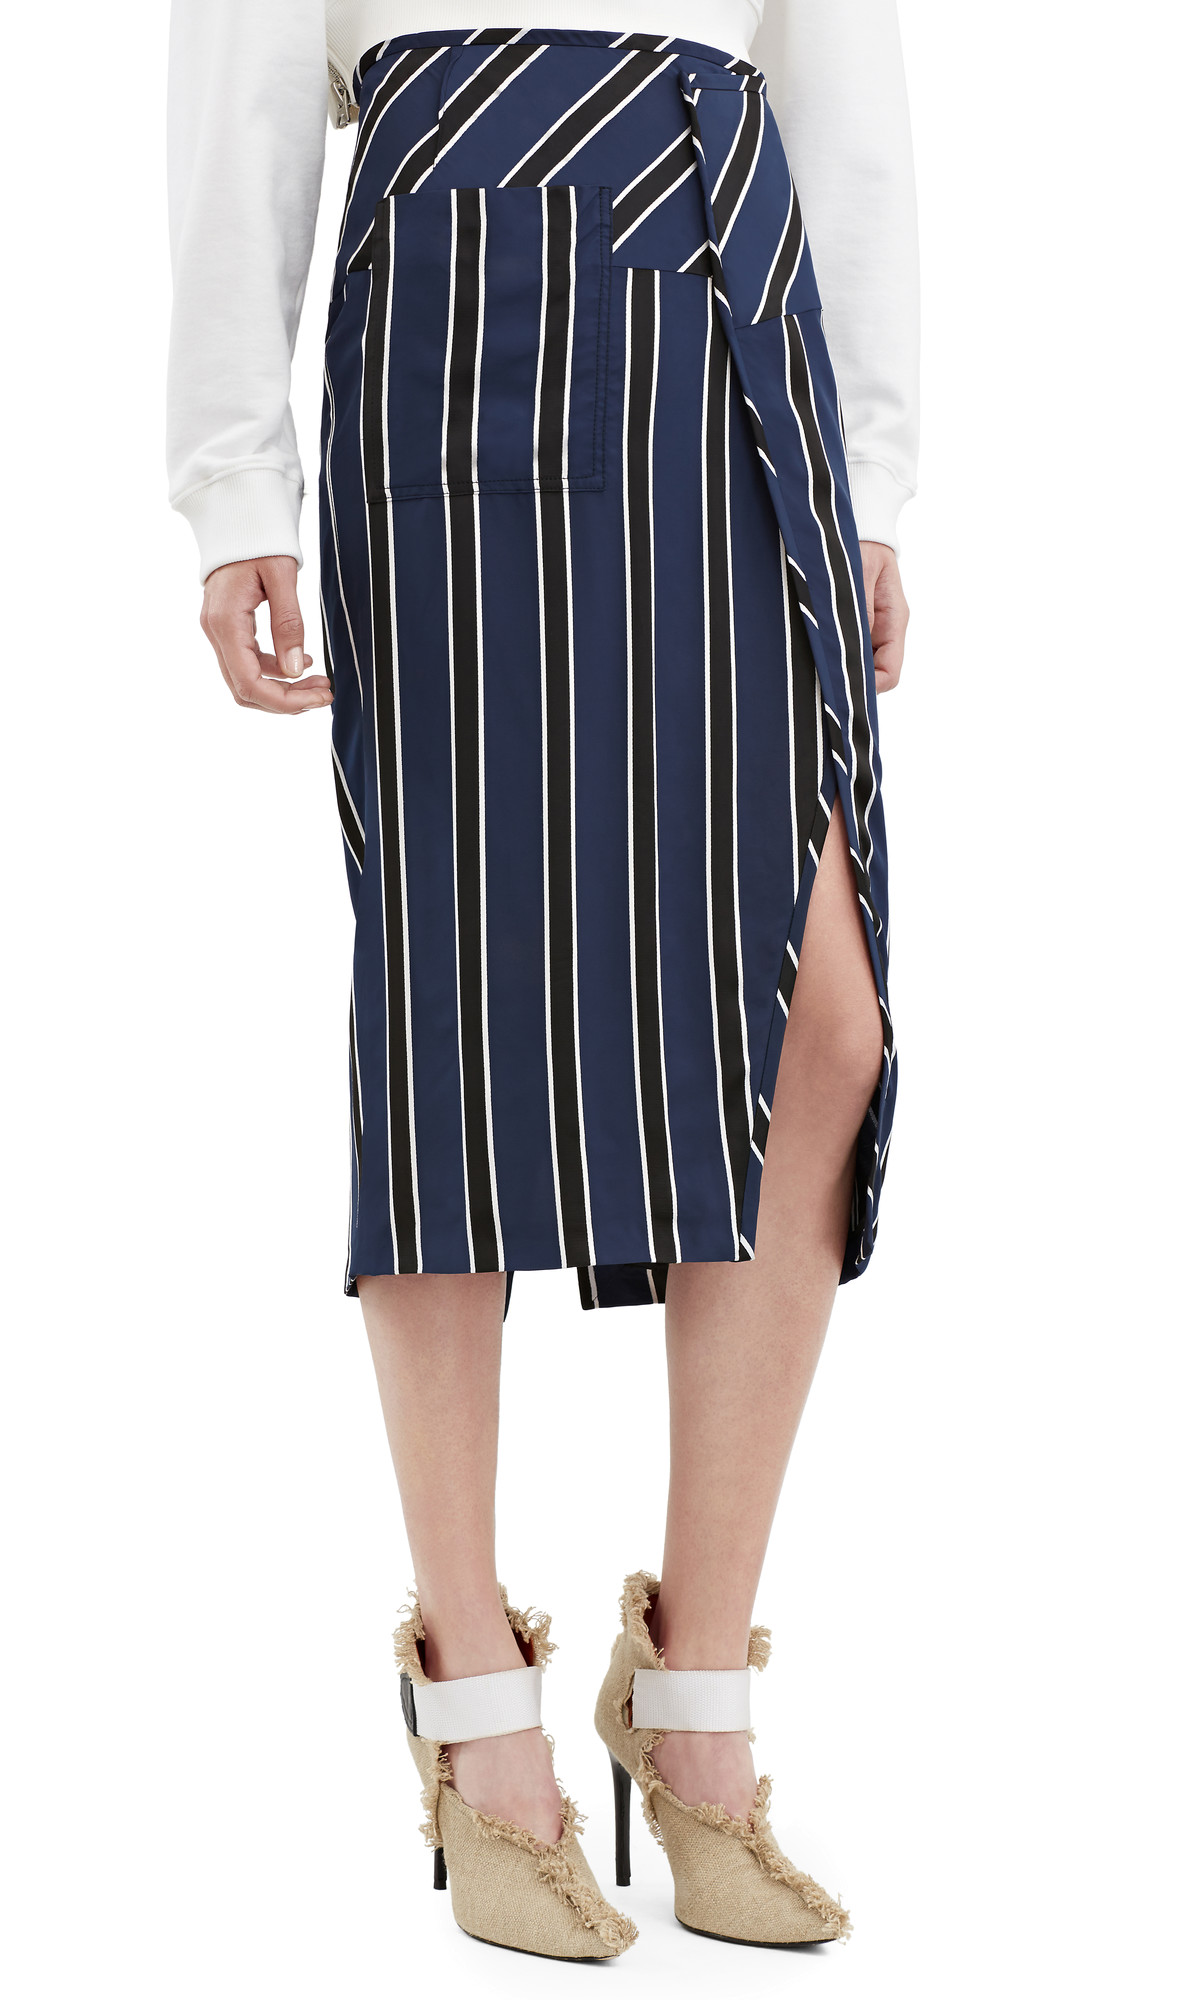 Acne Stripe Skirt